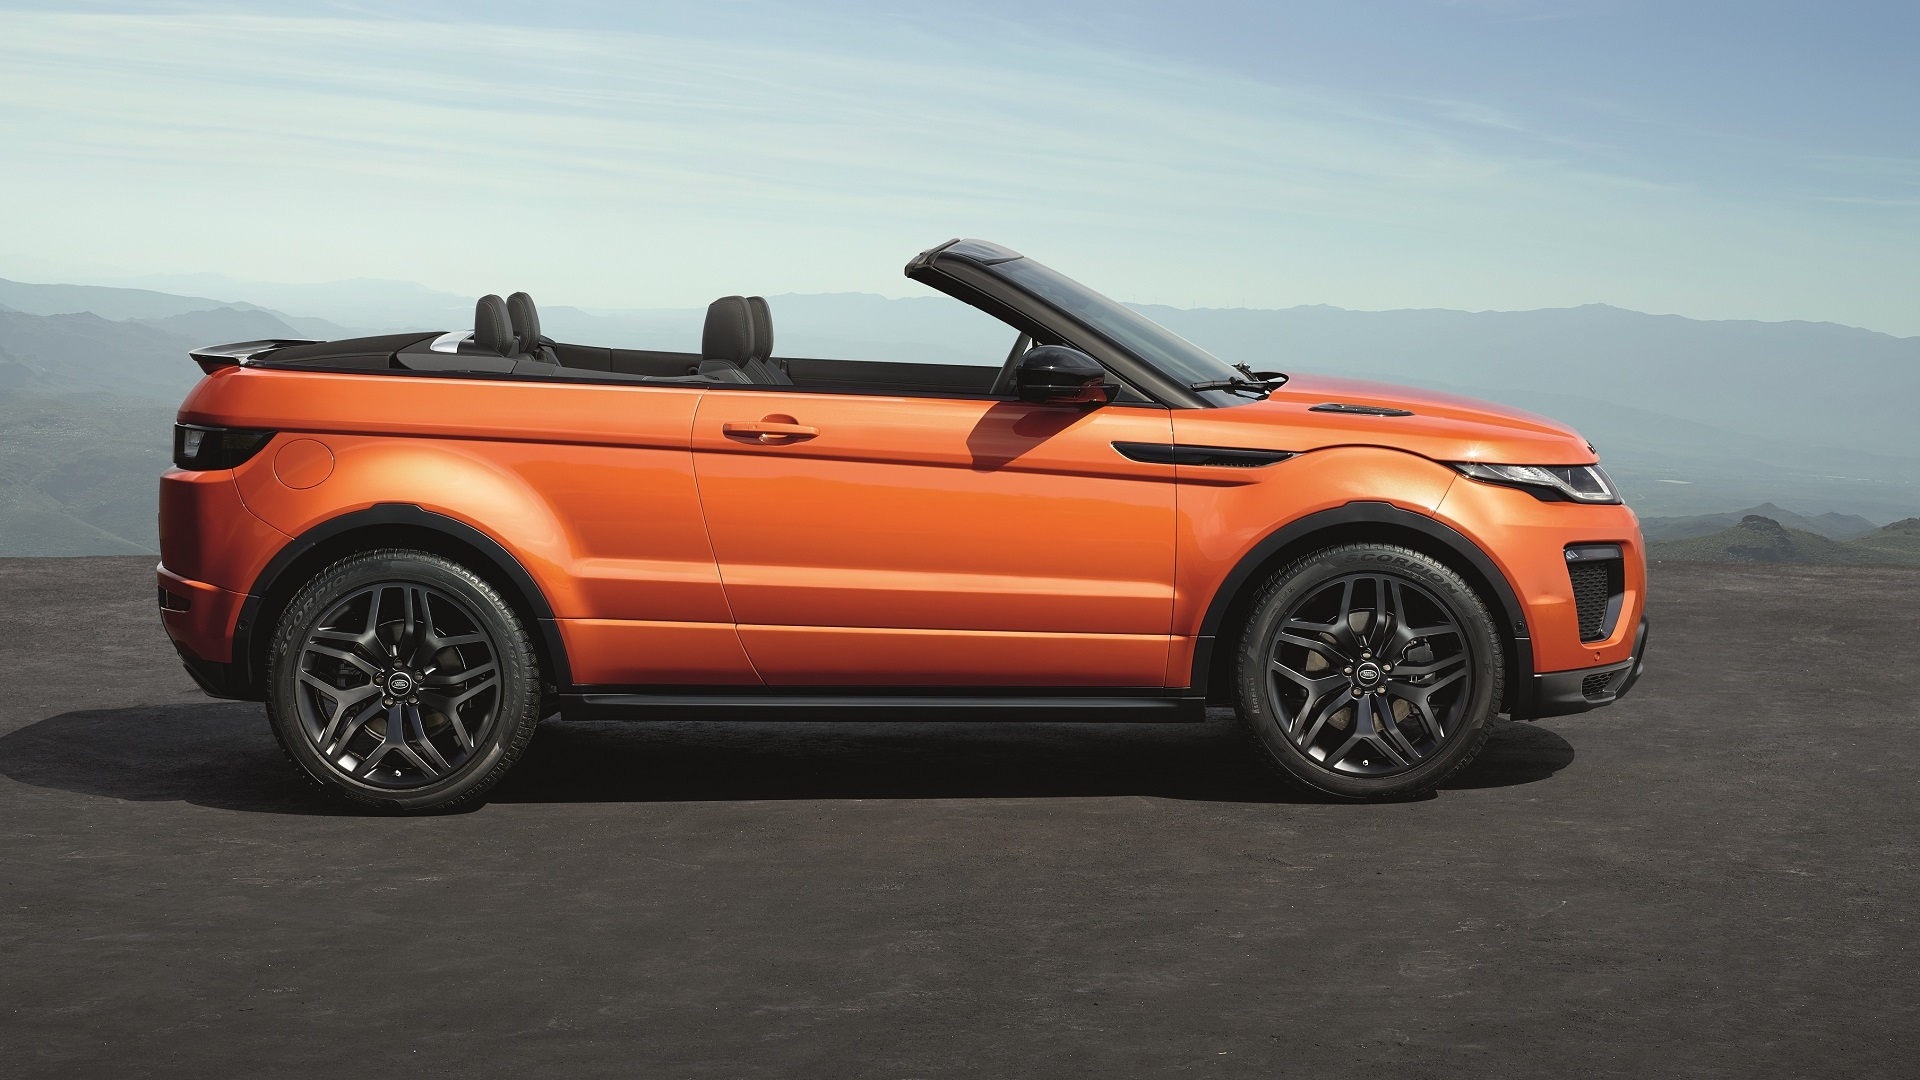 Land Rover Evoque Convertible >> Range Rover Evoque Convertible Launched In India at Rs 69.53 Lakh